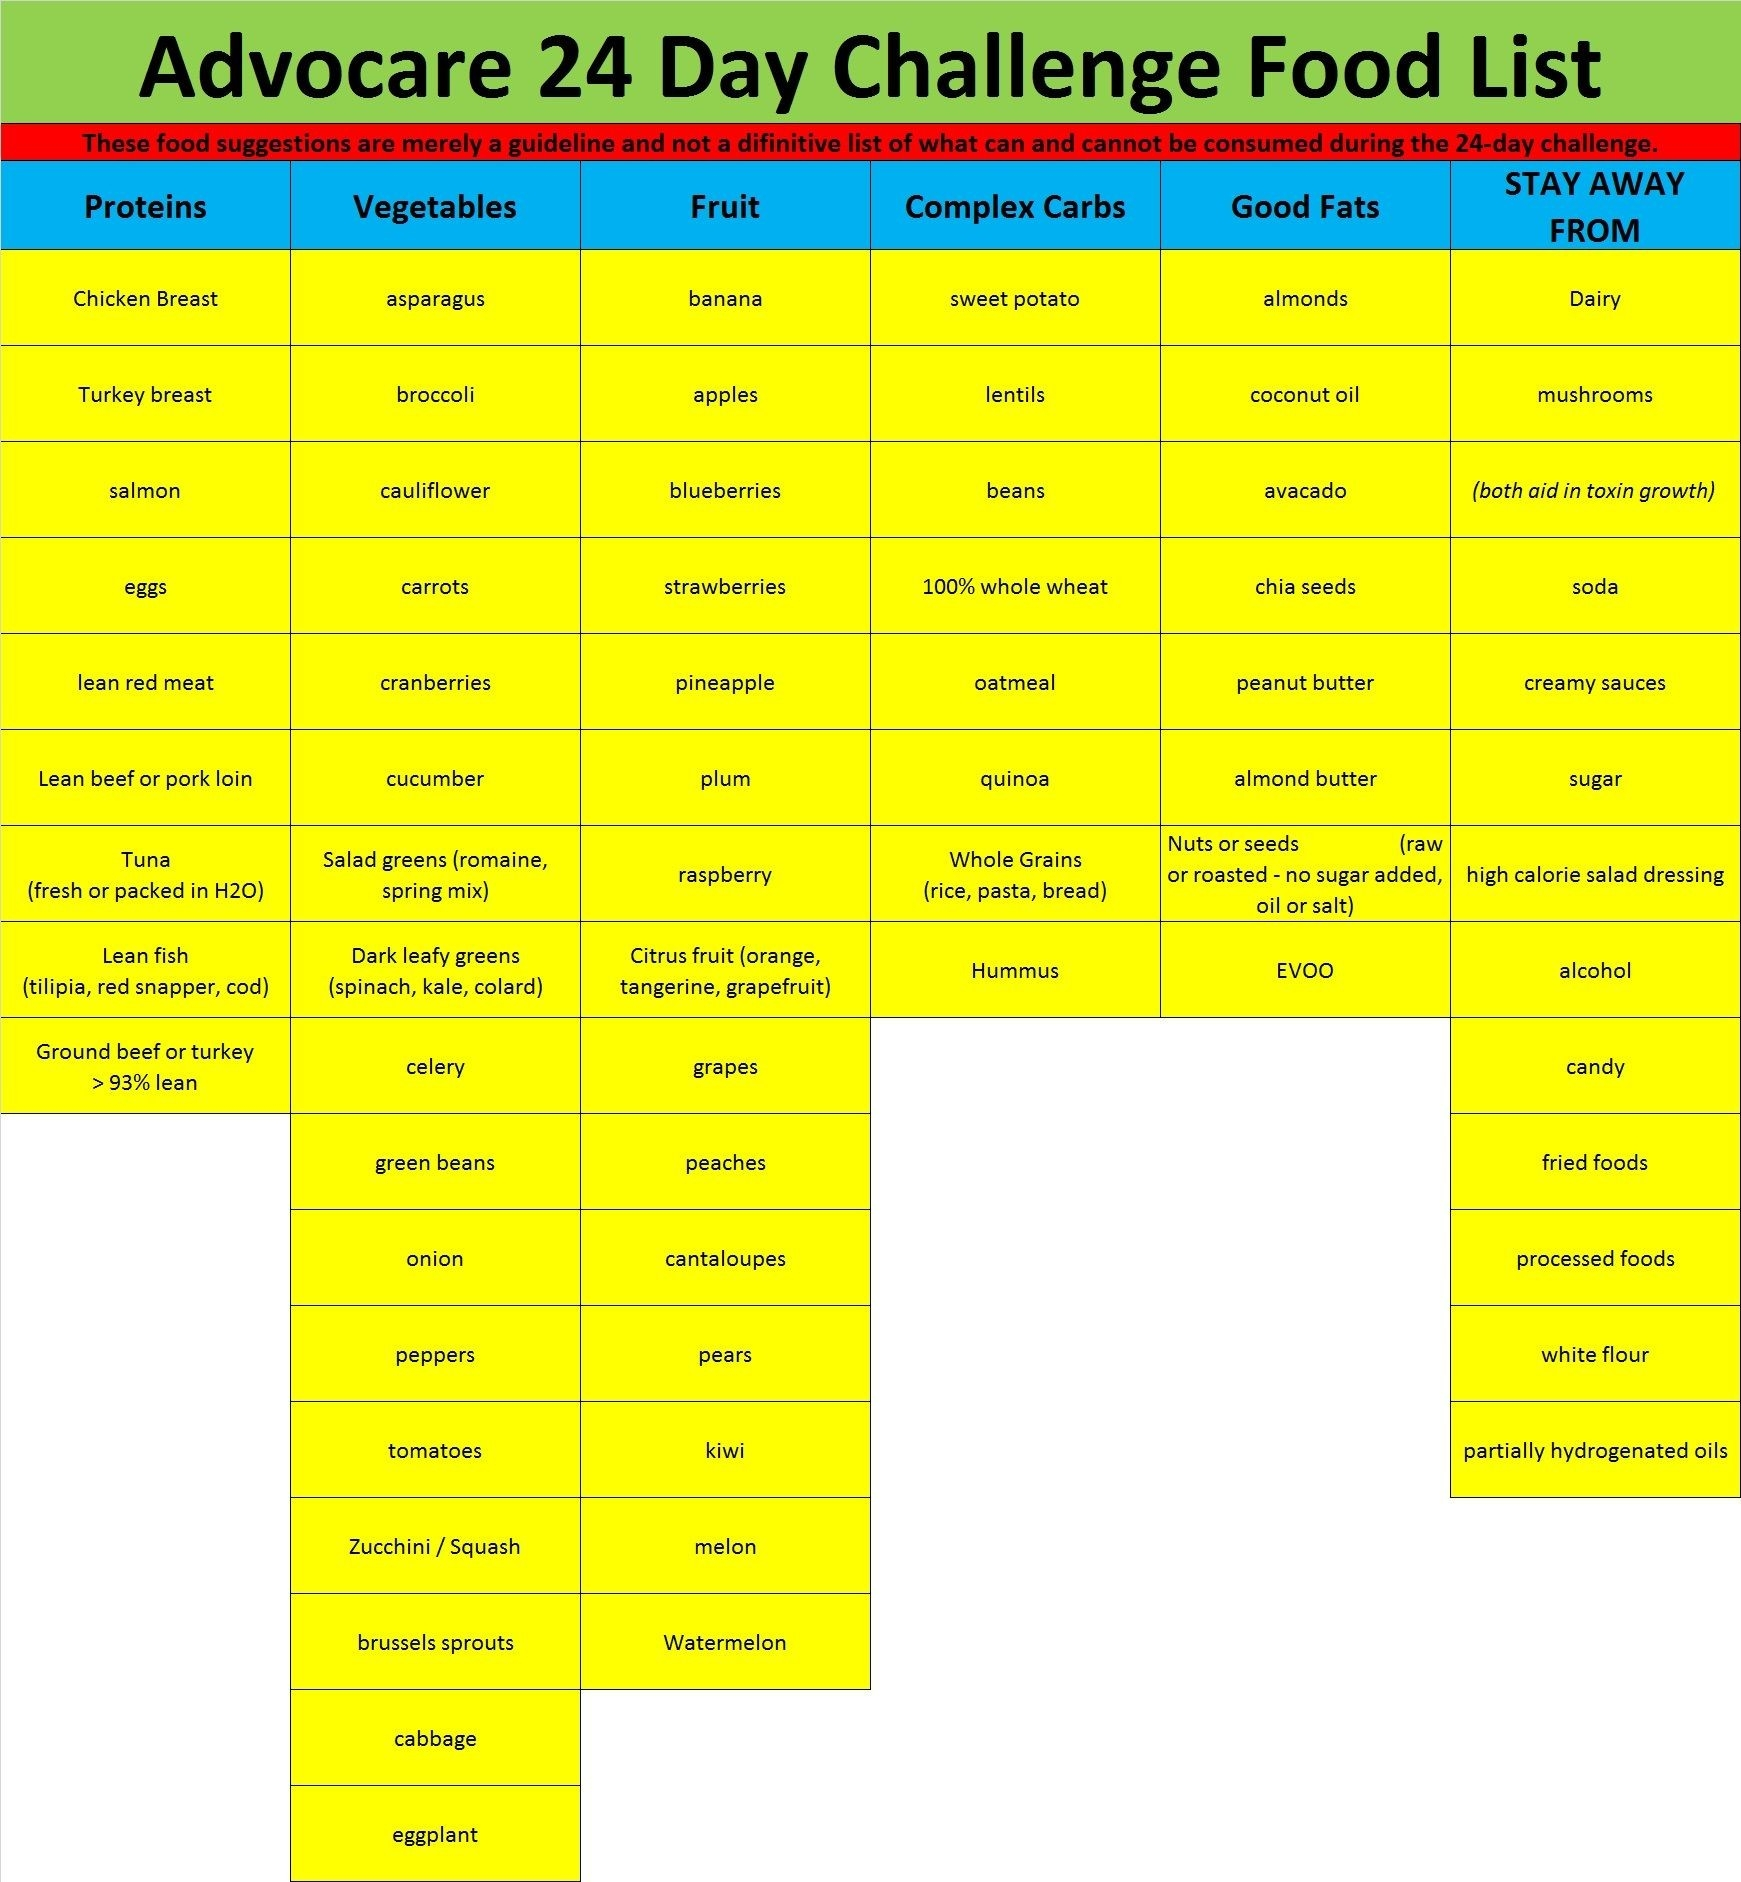 Food List For Advocare 24 Day Challenge | Advocare In 2018 for Advocare Food List 38219